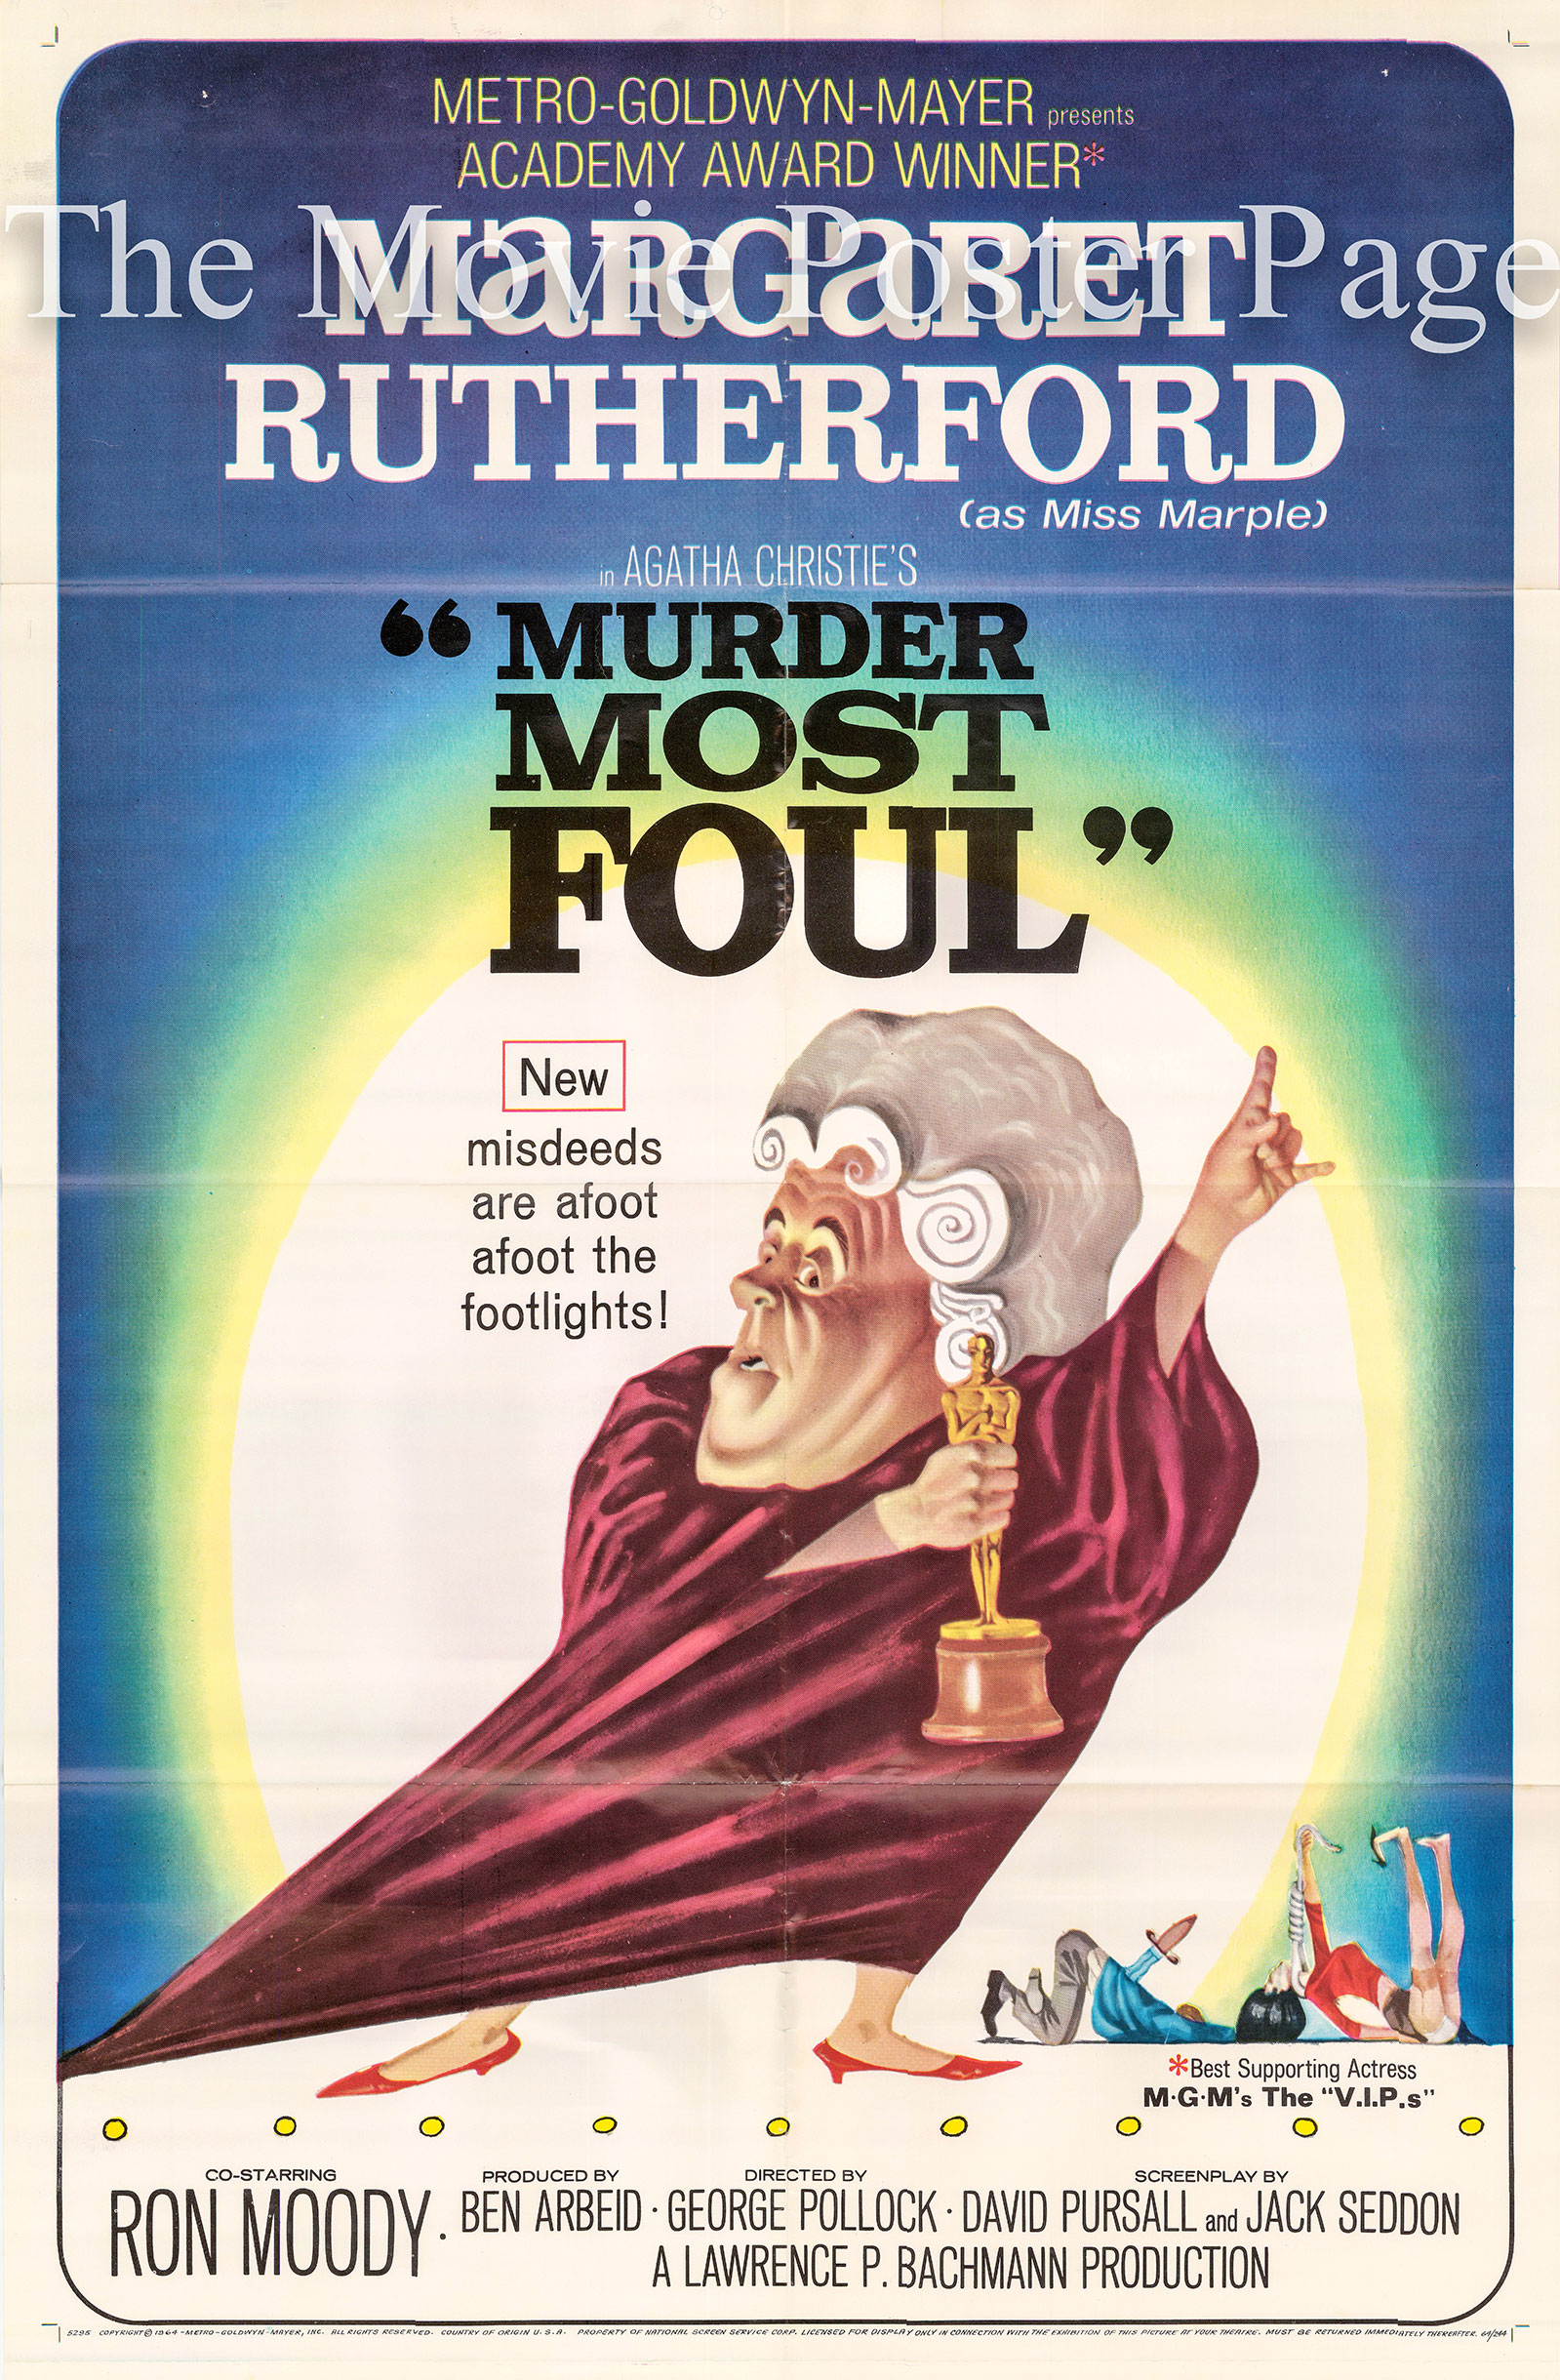 Pictured is a US one-sheet promotional poster for the 1964 George Pollock film Murder Most Foul starring Margaret Rutherford as Miss Jane Marple.